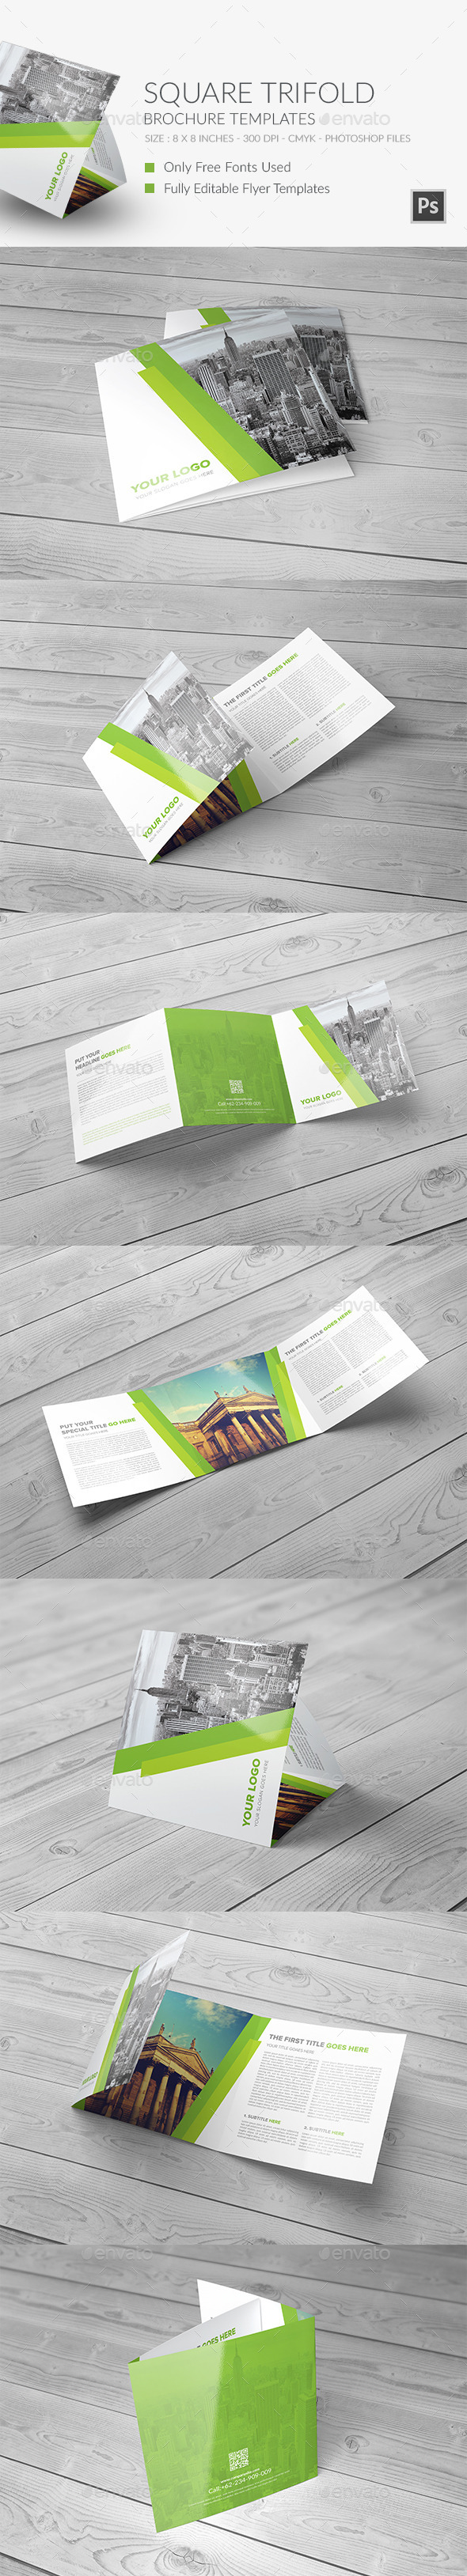 GraphicRiver Square Trifold Brochure vol 1 11871655